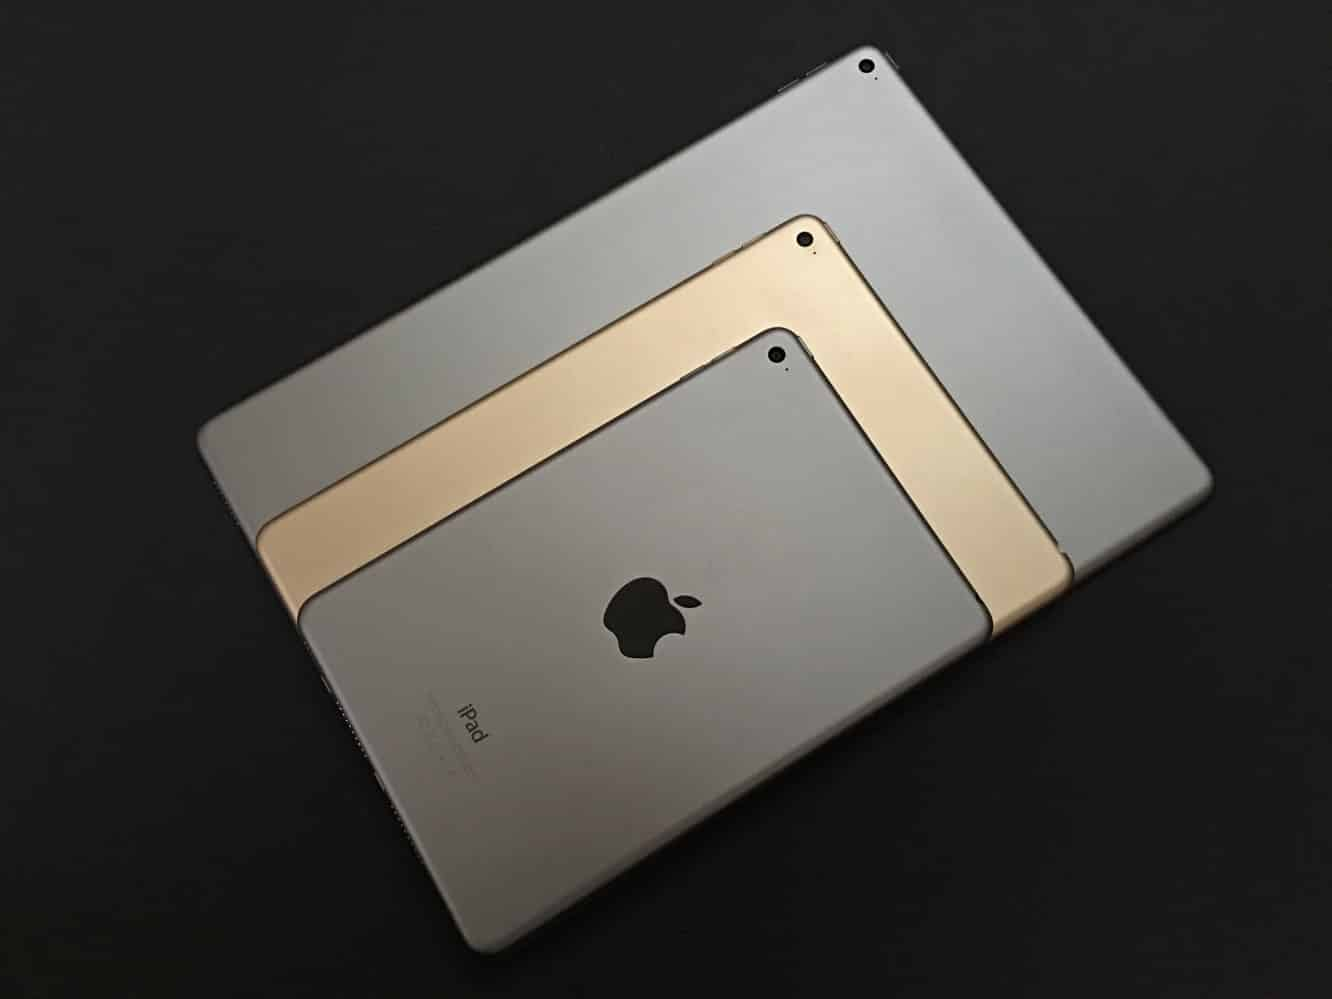 KGI's Kuo still predicts three iPad sizes, including a high end midsize model